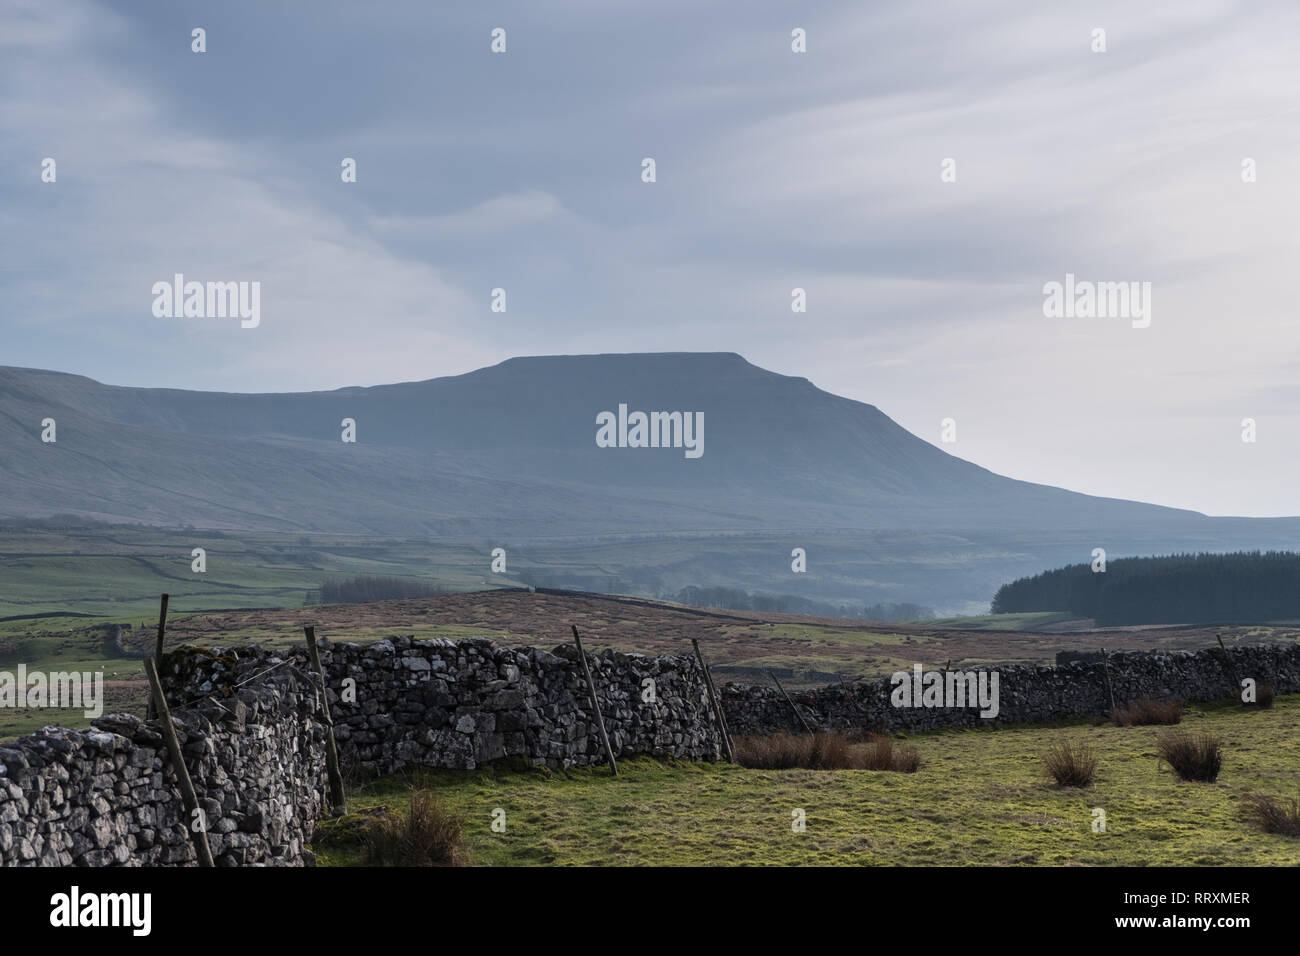 Ingleborough from the Winterscales dale in the Yorkshire Dales - Stock Image